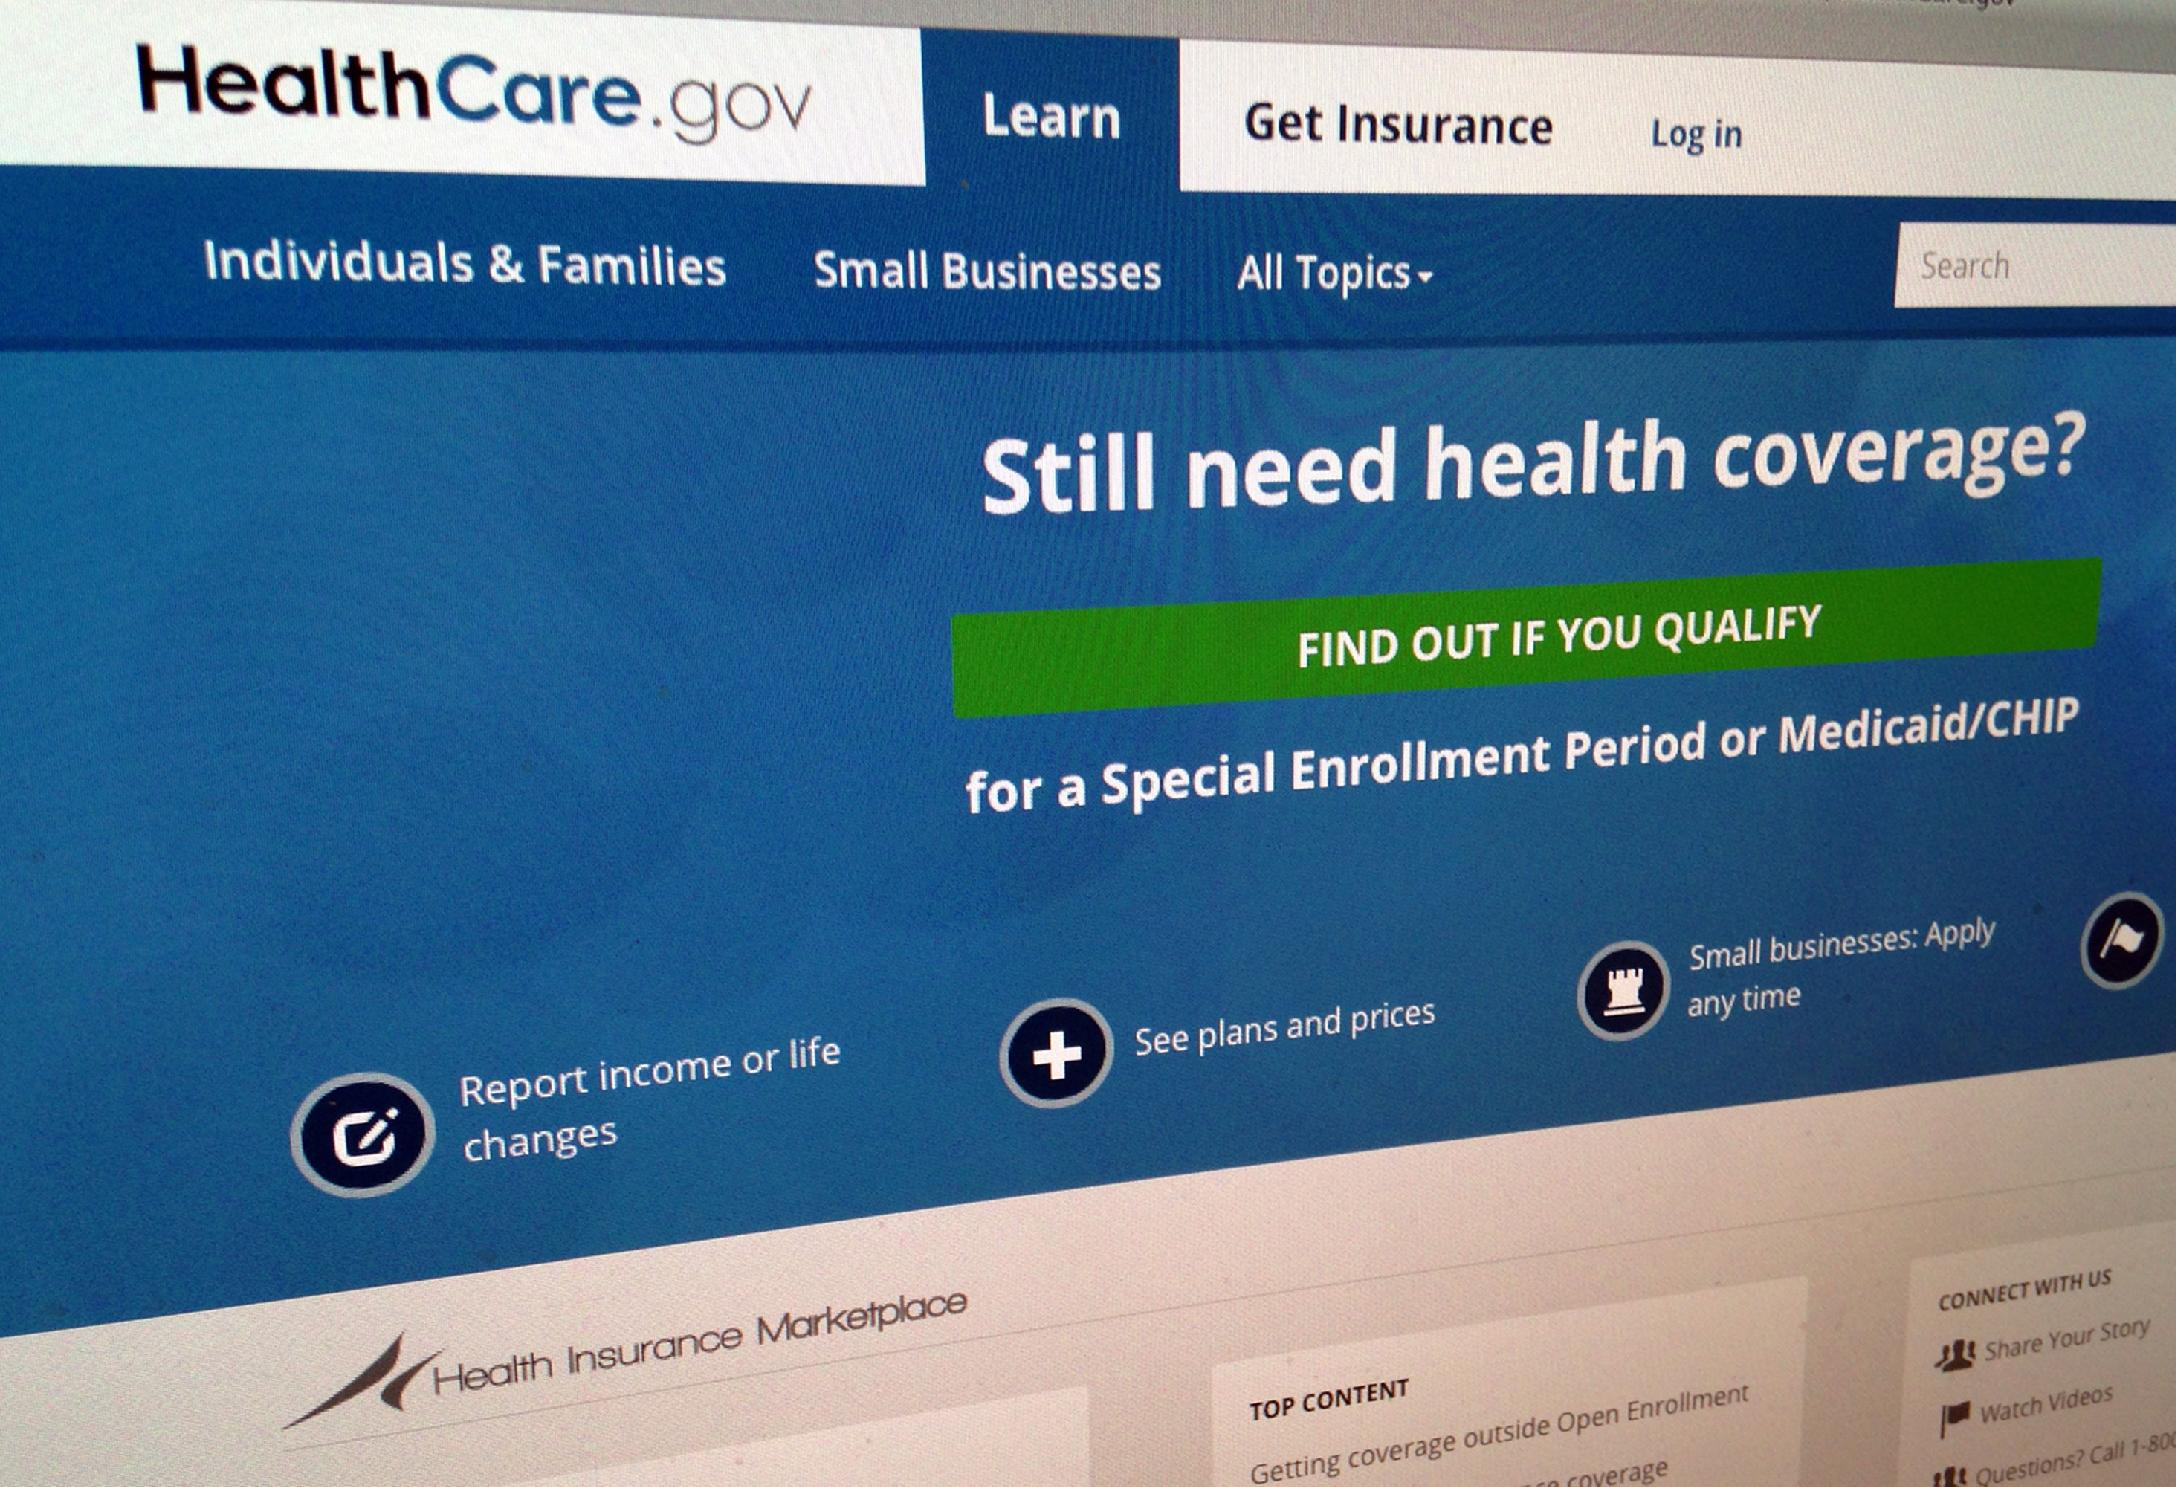 Government hackers try to crack HealthCare.gov